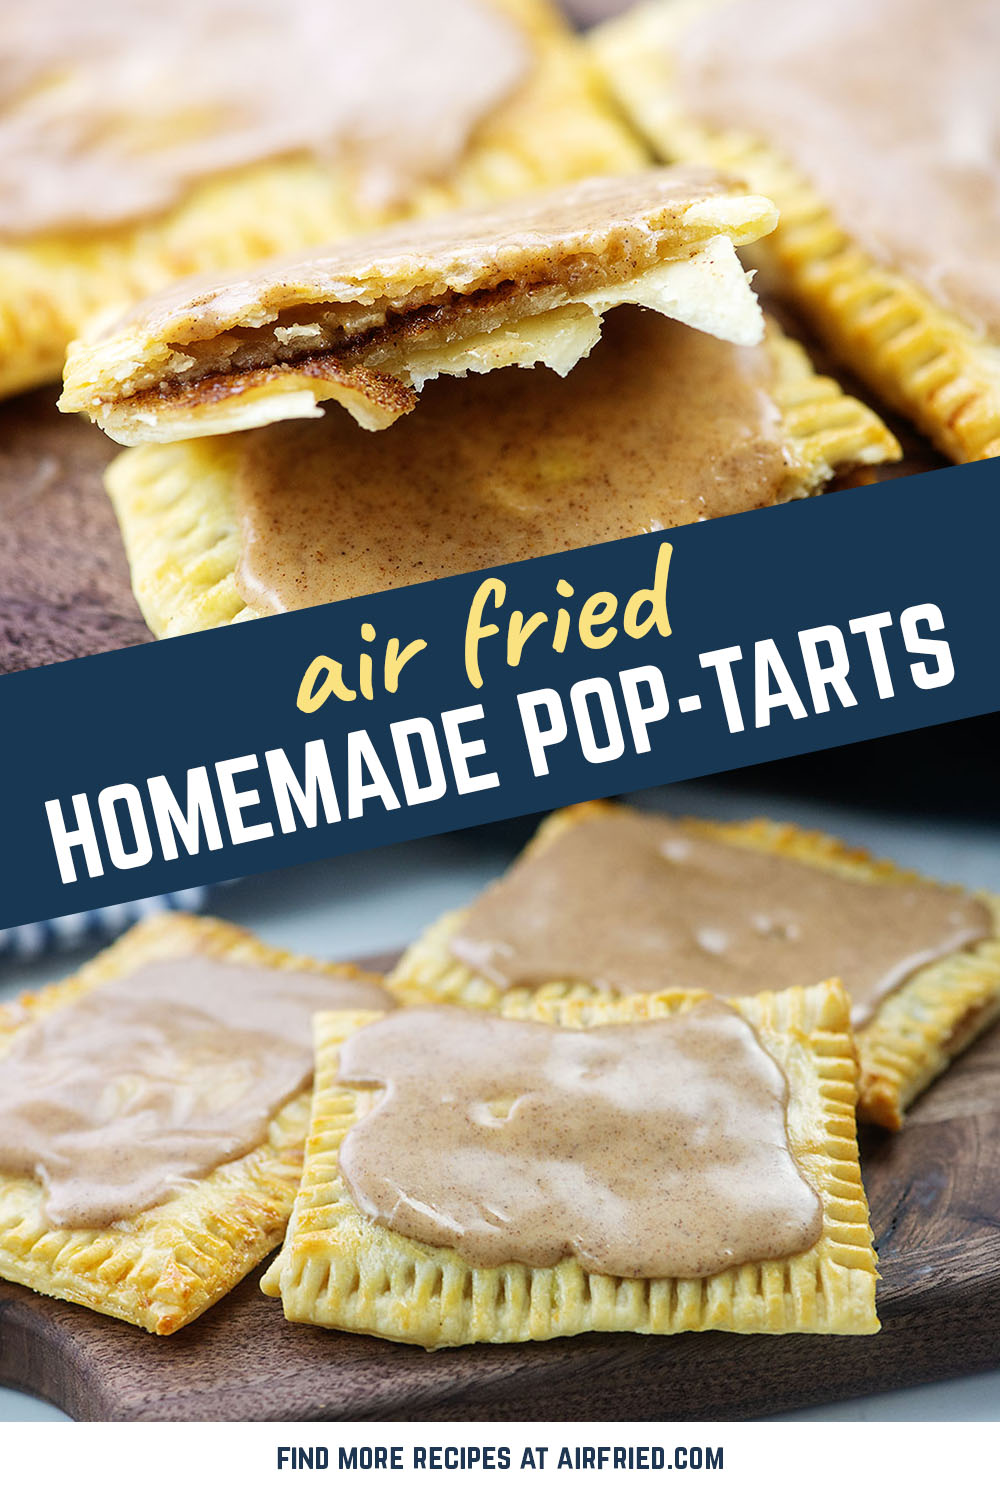 These sweet breakfast snacks are homemade and full of cinnamon and brown sugar! #breakfast #recipes #poptarts